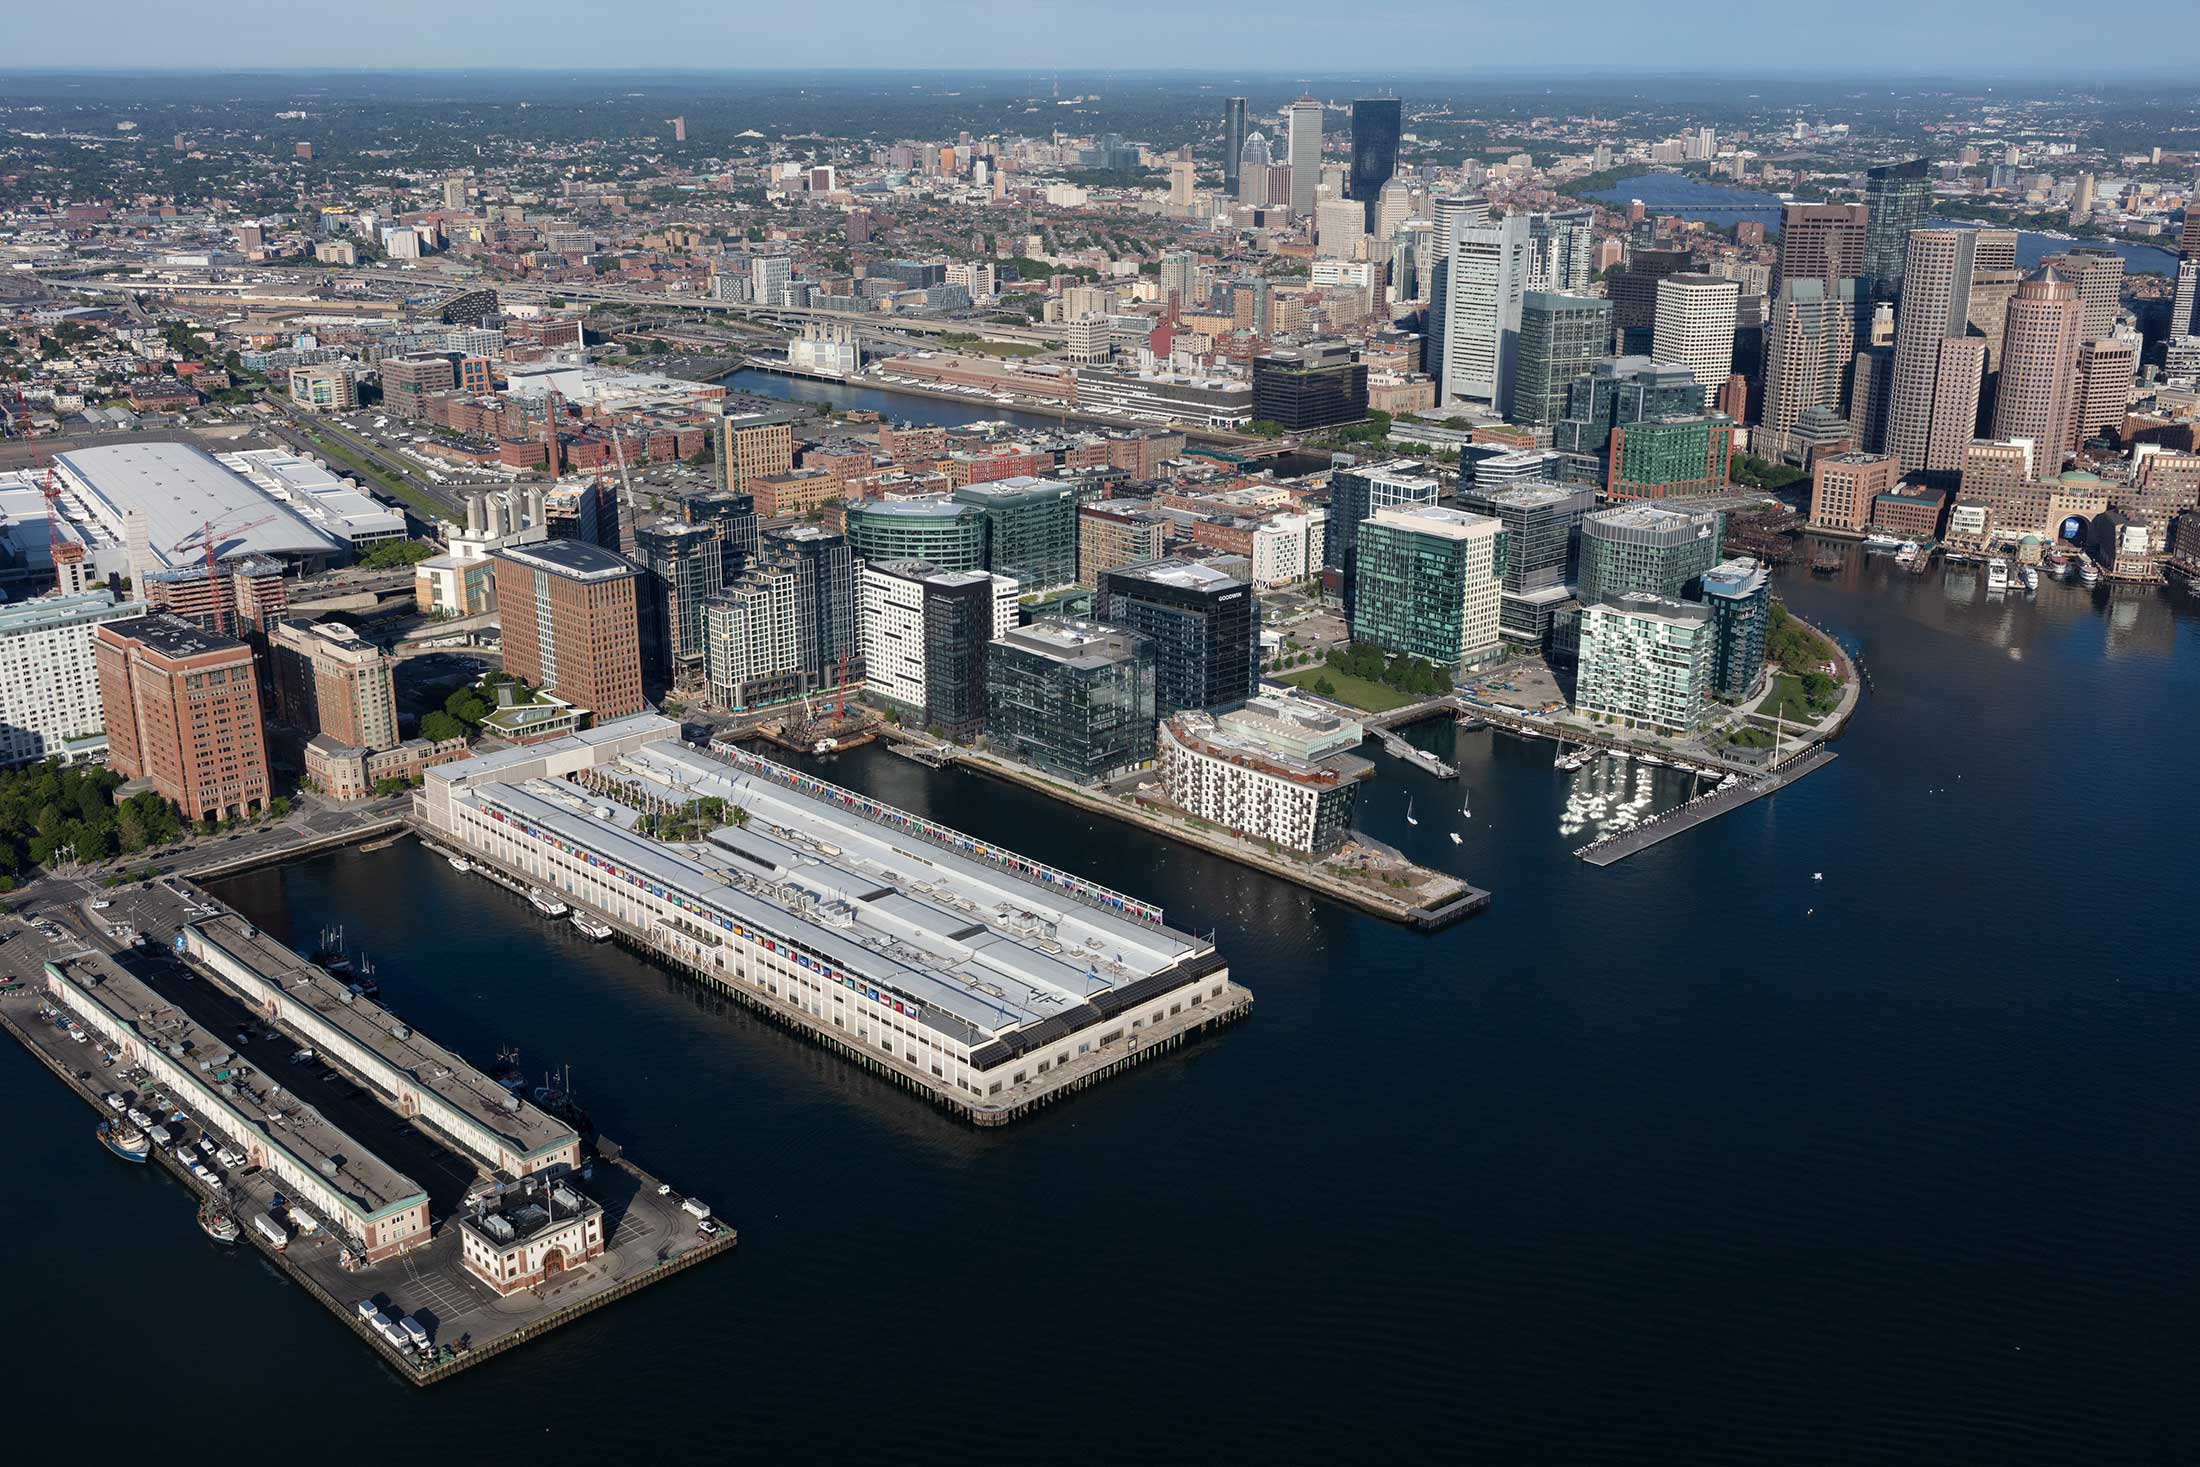 Boston Built a New Waterfront Just in Time for the Apocalypse